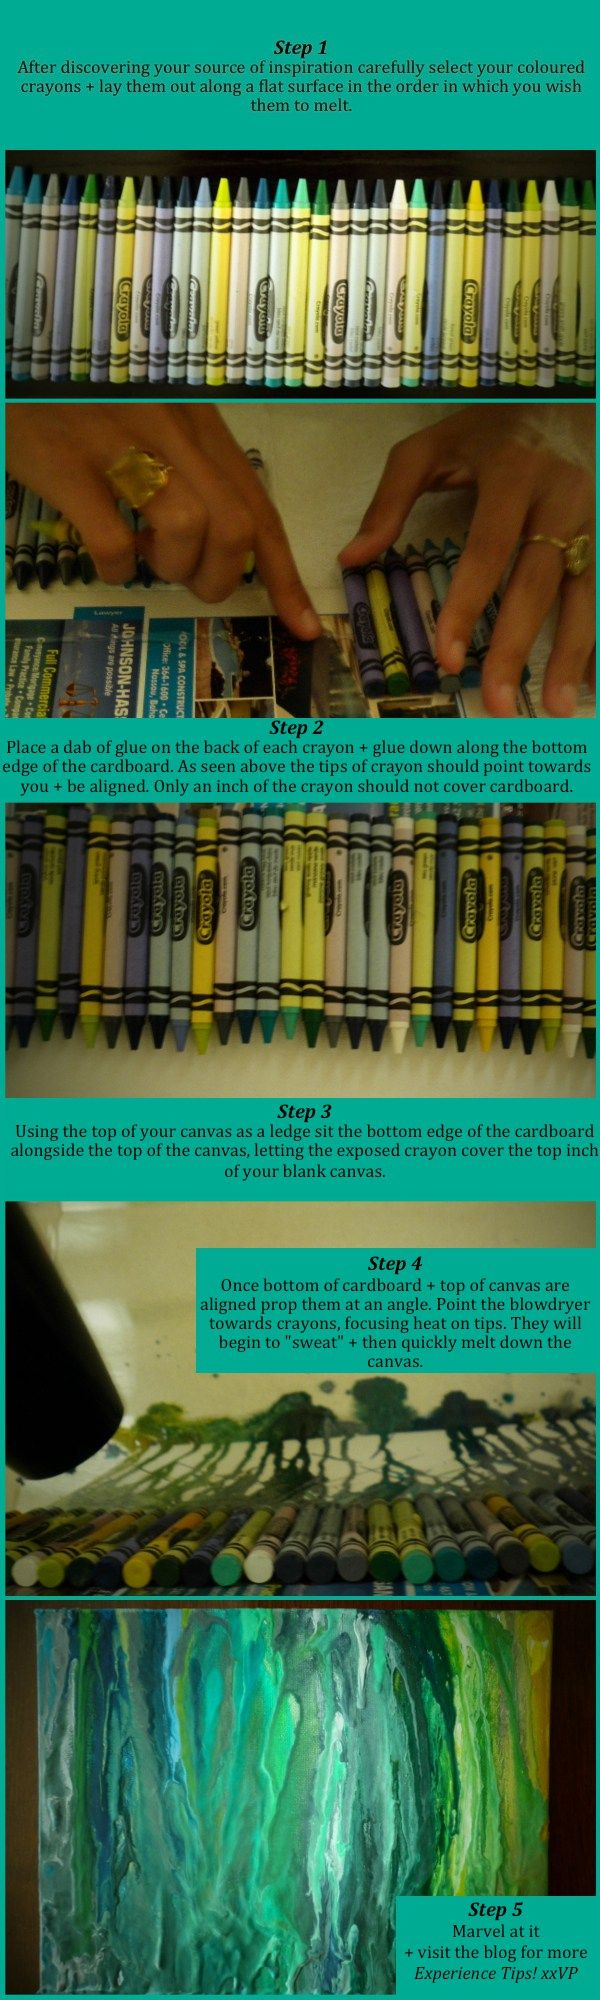 Melting Crayon Art Instructions